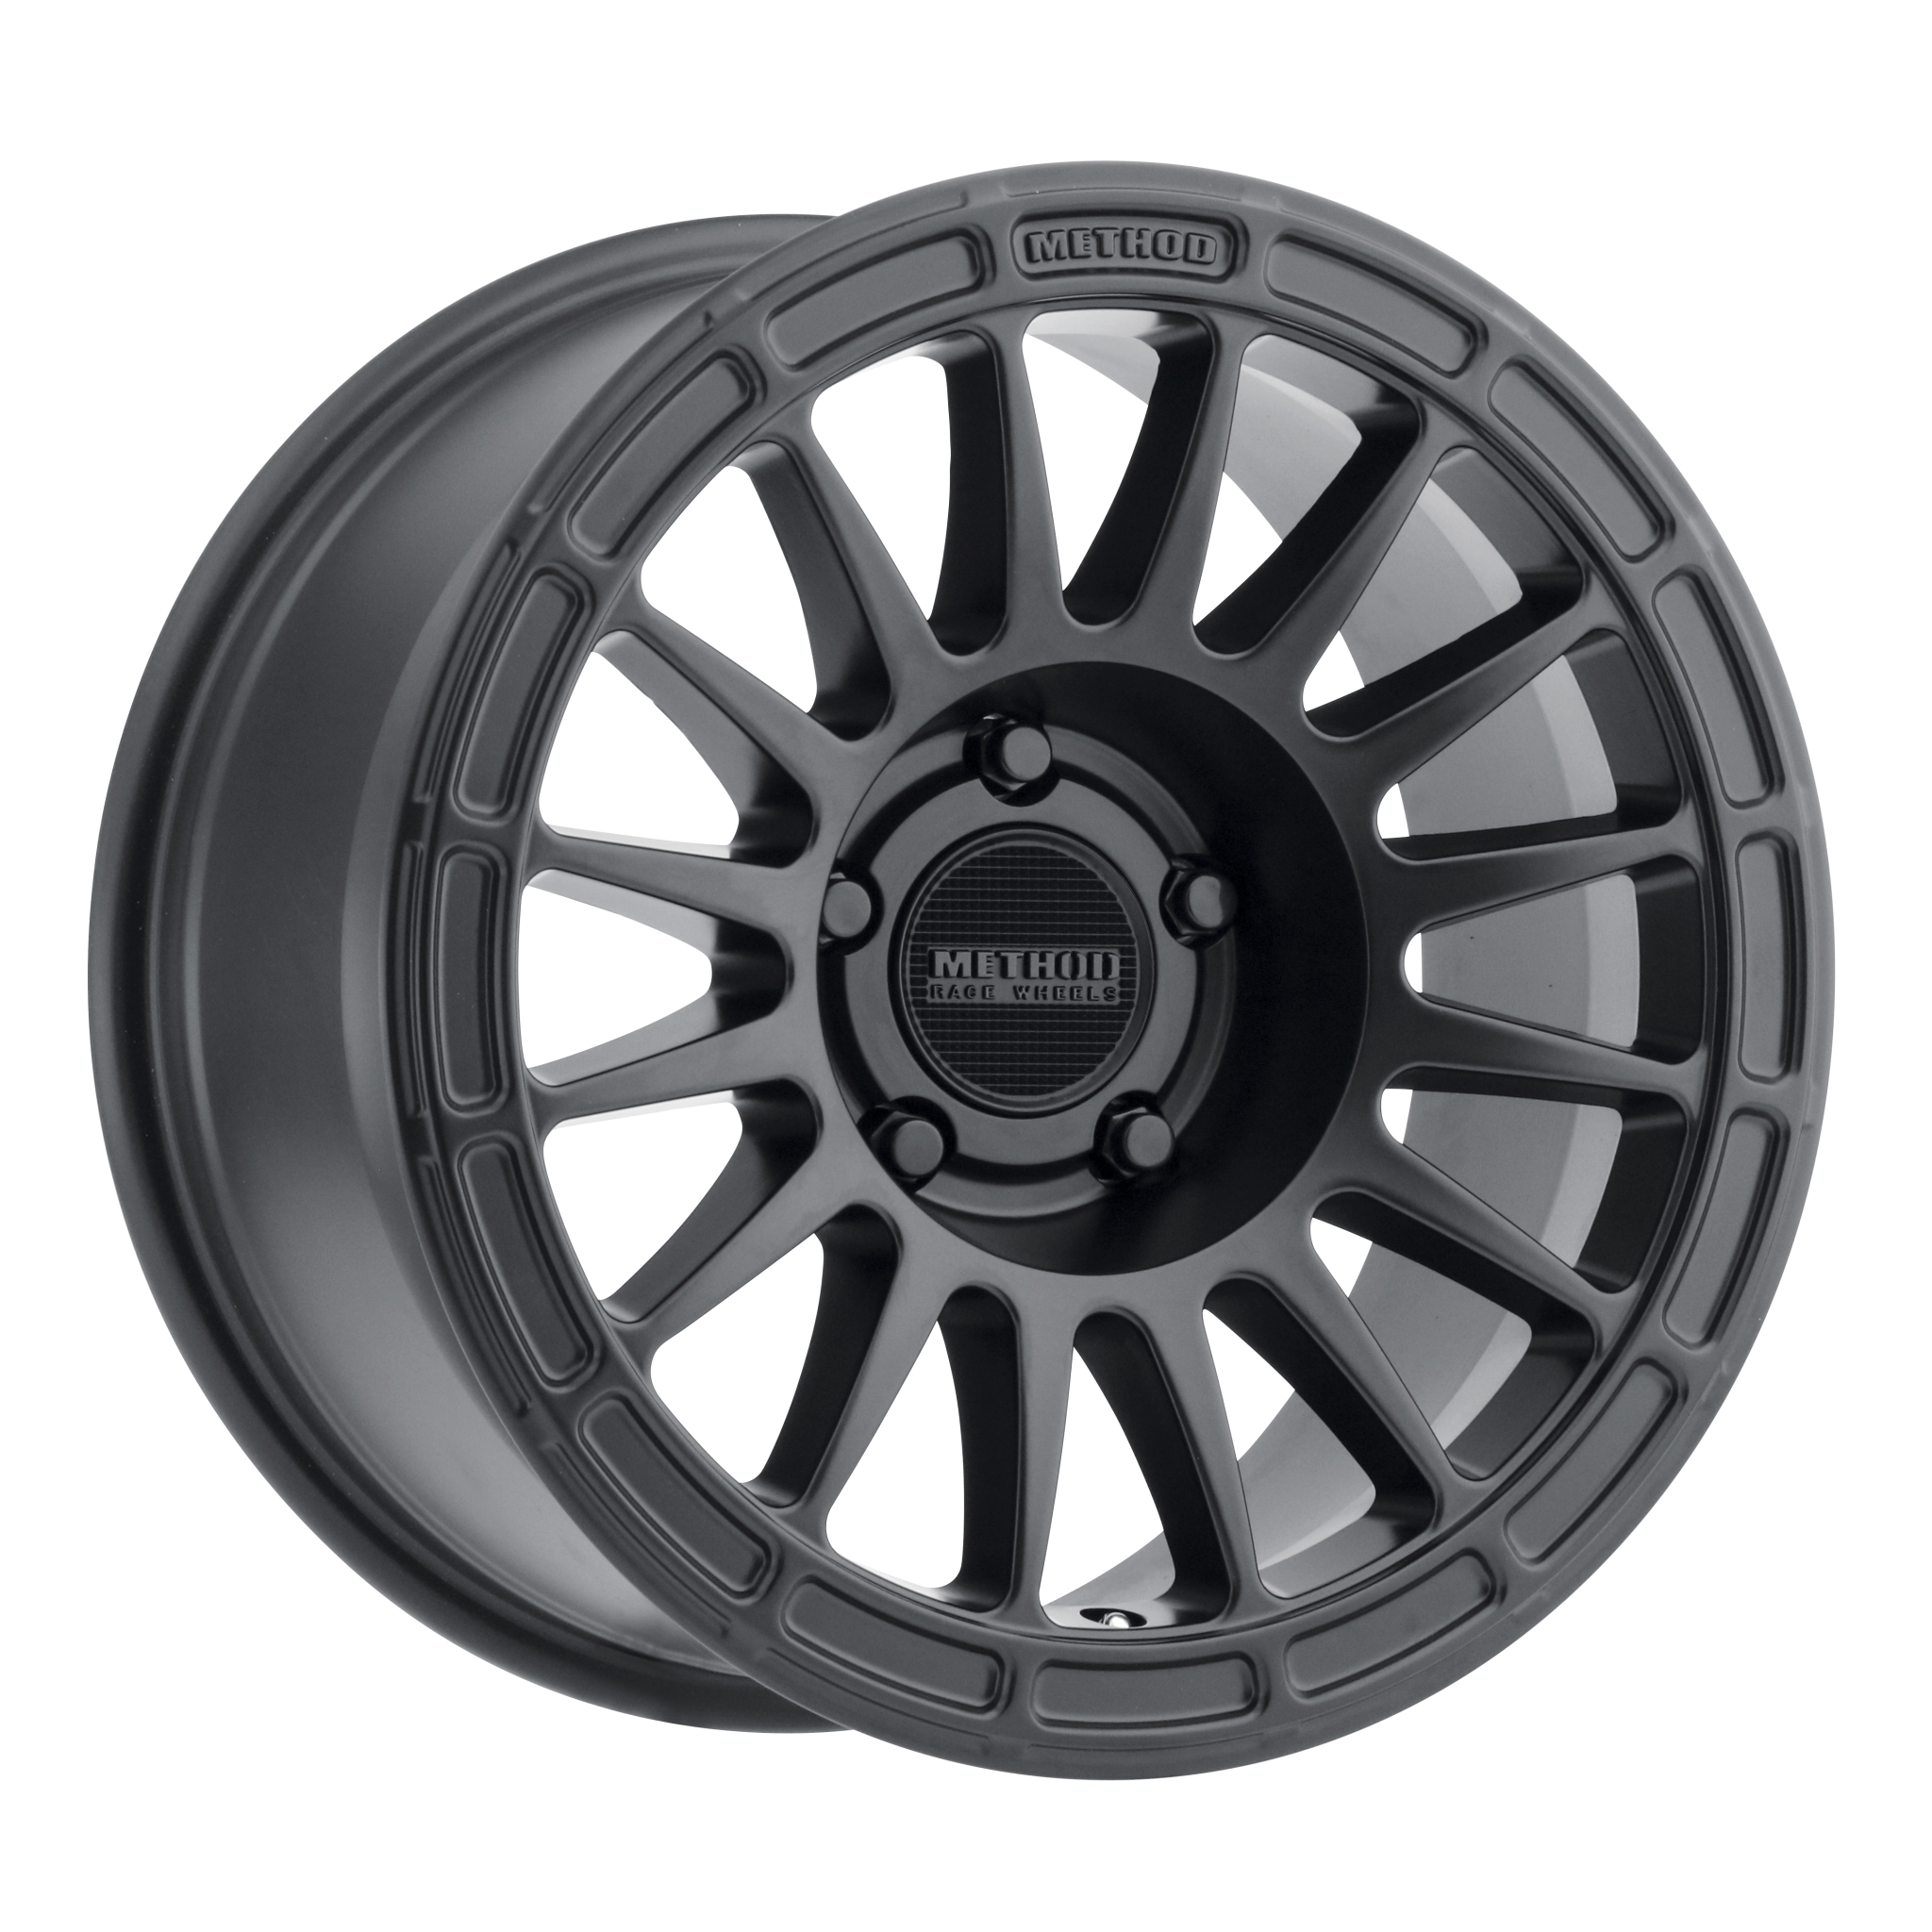 Method 314, 18x9, +18mm Offset, 5x150, 110.5mm Centerbore, Matte Black